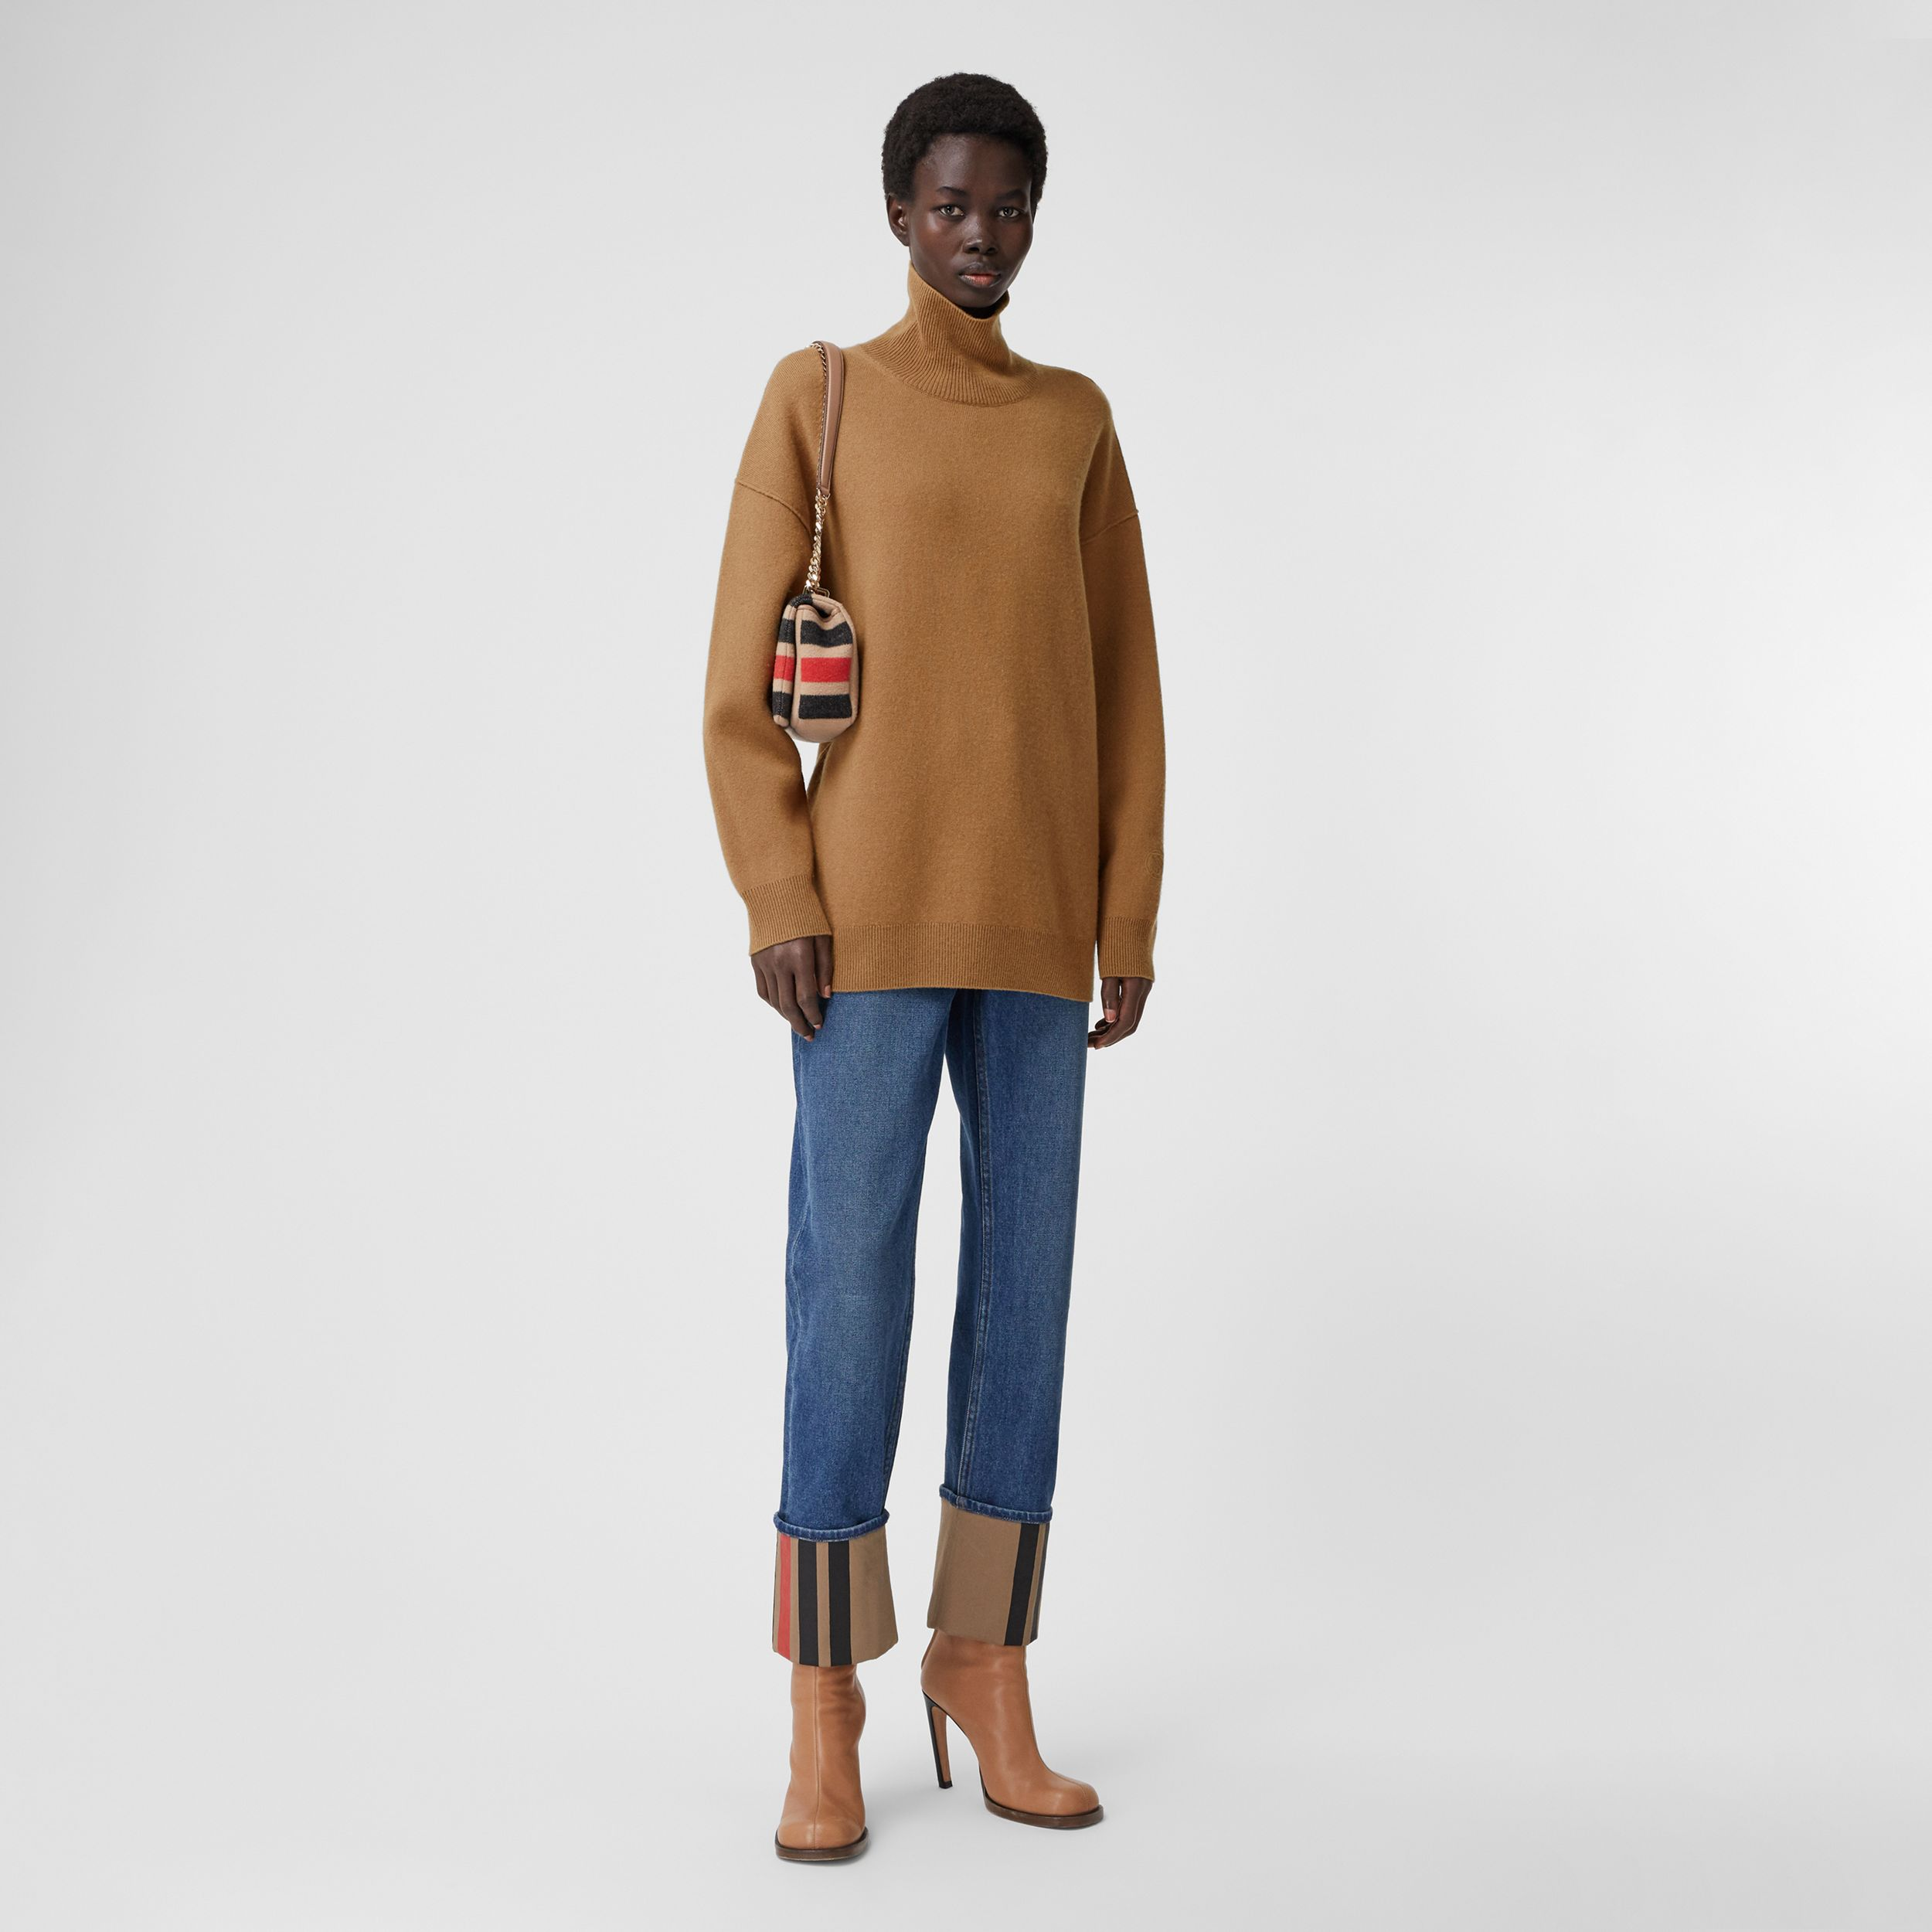 Monogram Motif Cashmere Blend Funnel Neck Sweater in Camel - Women | Burberry Australia - 1